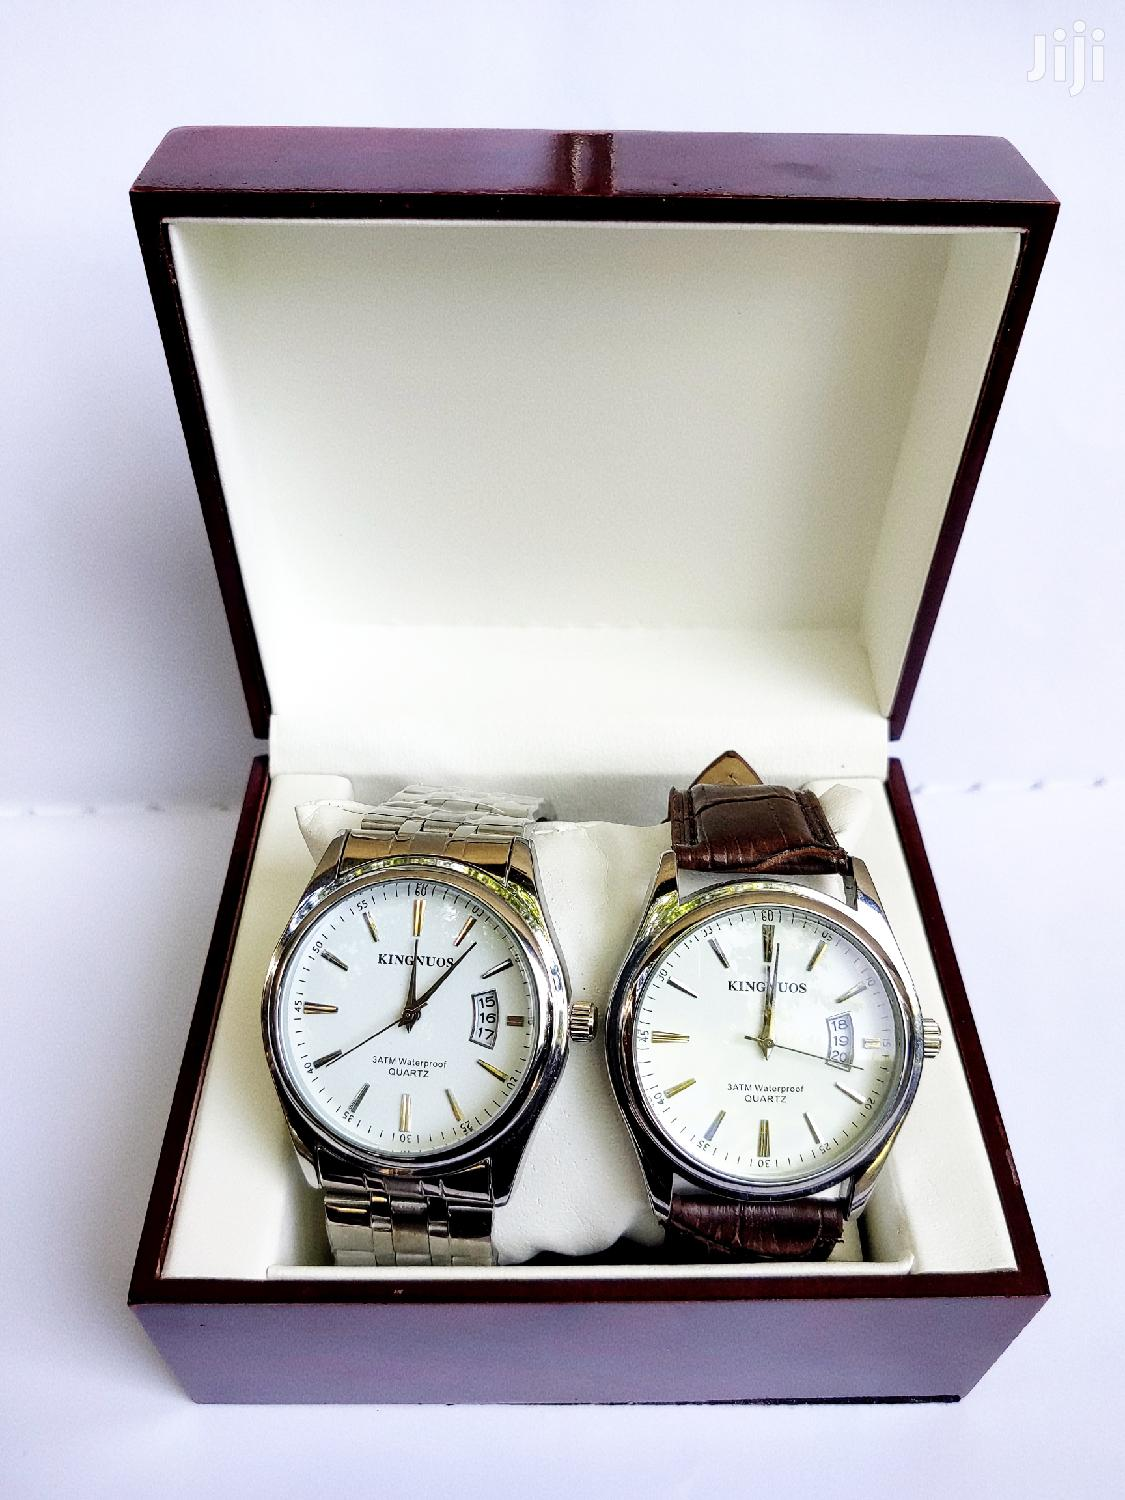 Kingnuos Watches | Watches for sale in Kinondoni, Dar es Salaam, Tanzania